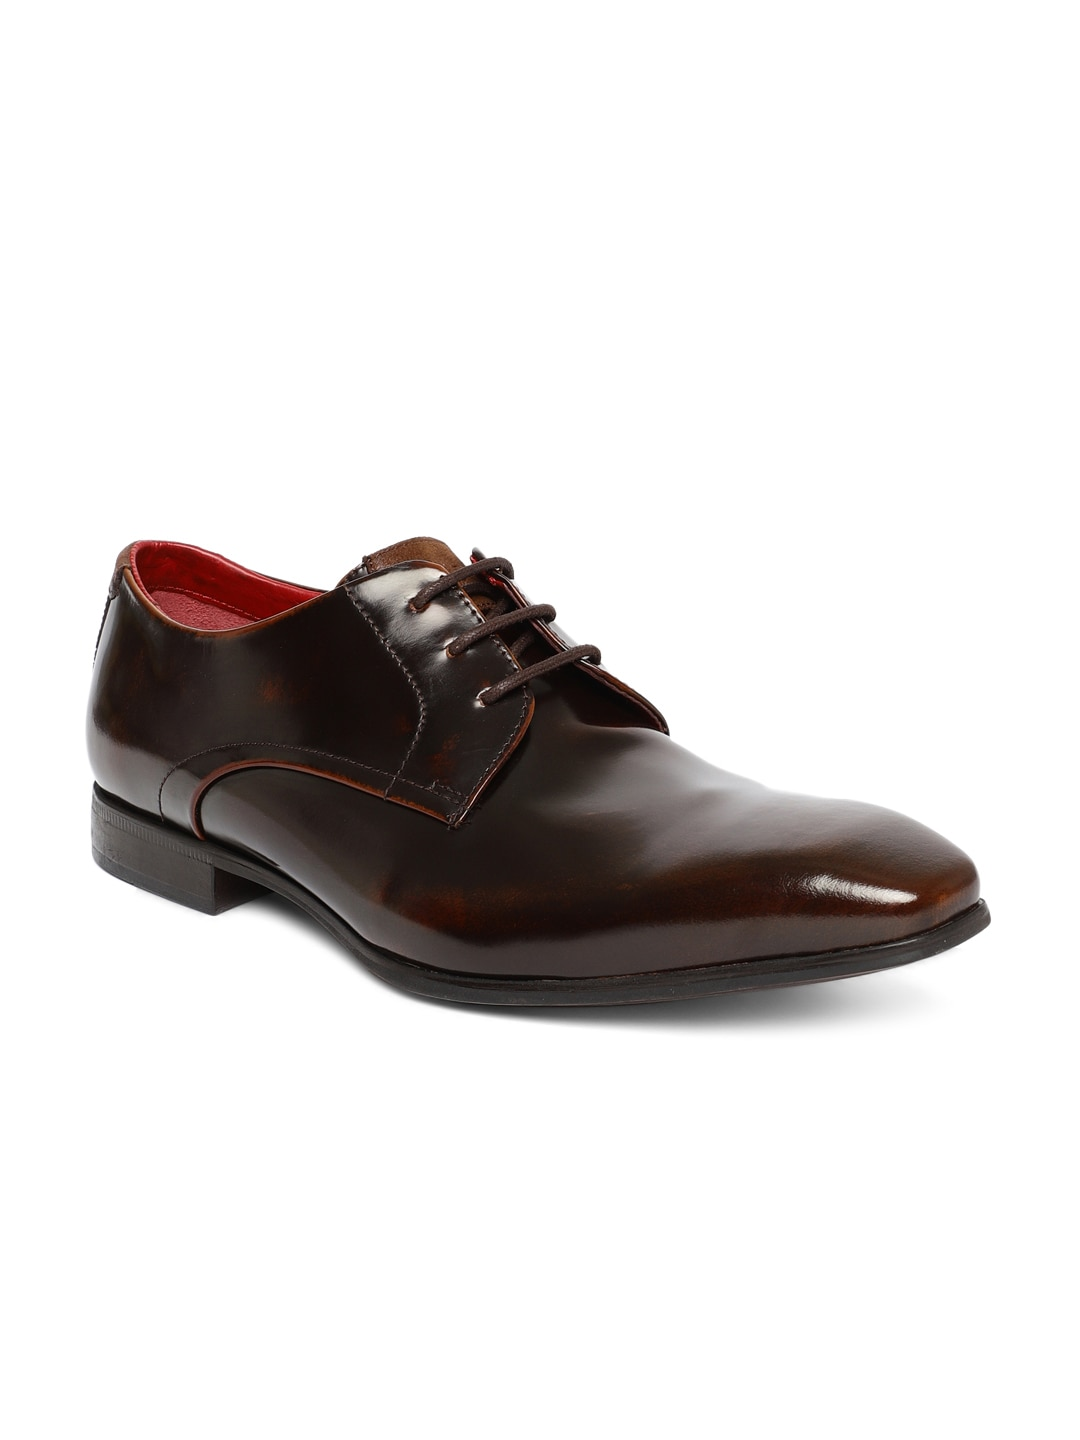 29b88fd0579 Ruosh Shoes - Buy Ruosh Shoes online in India